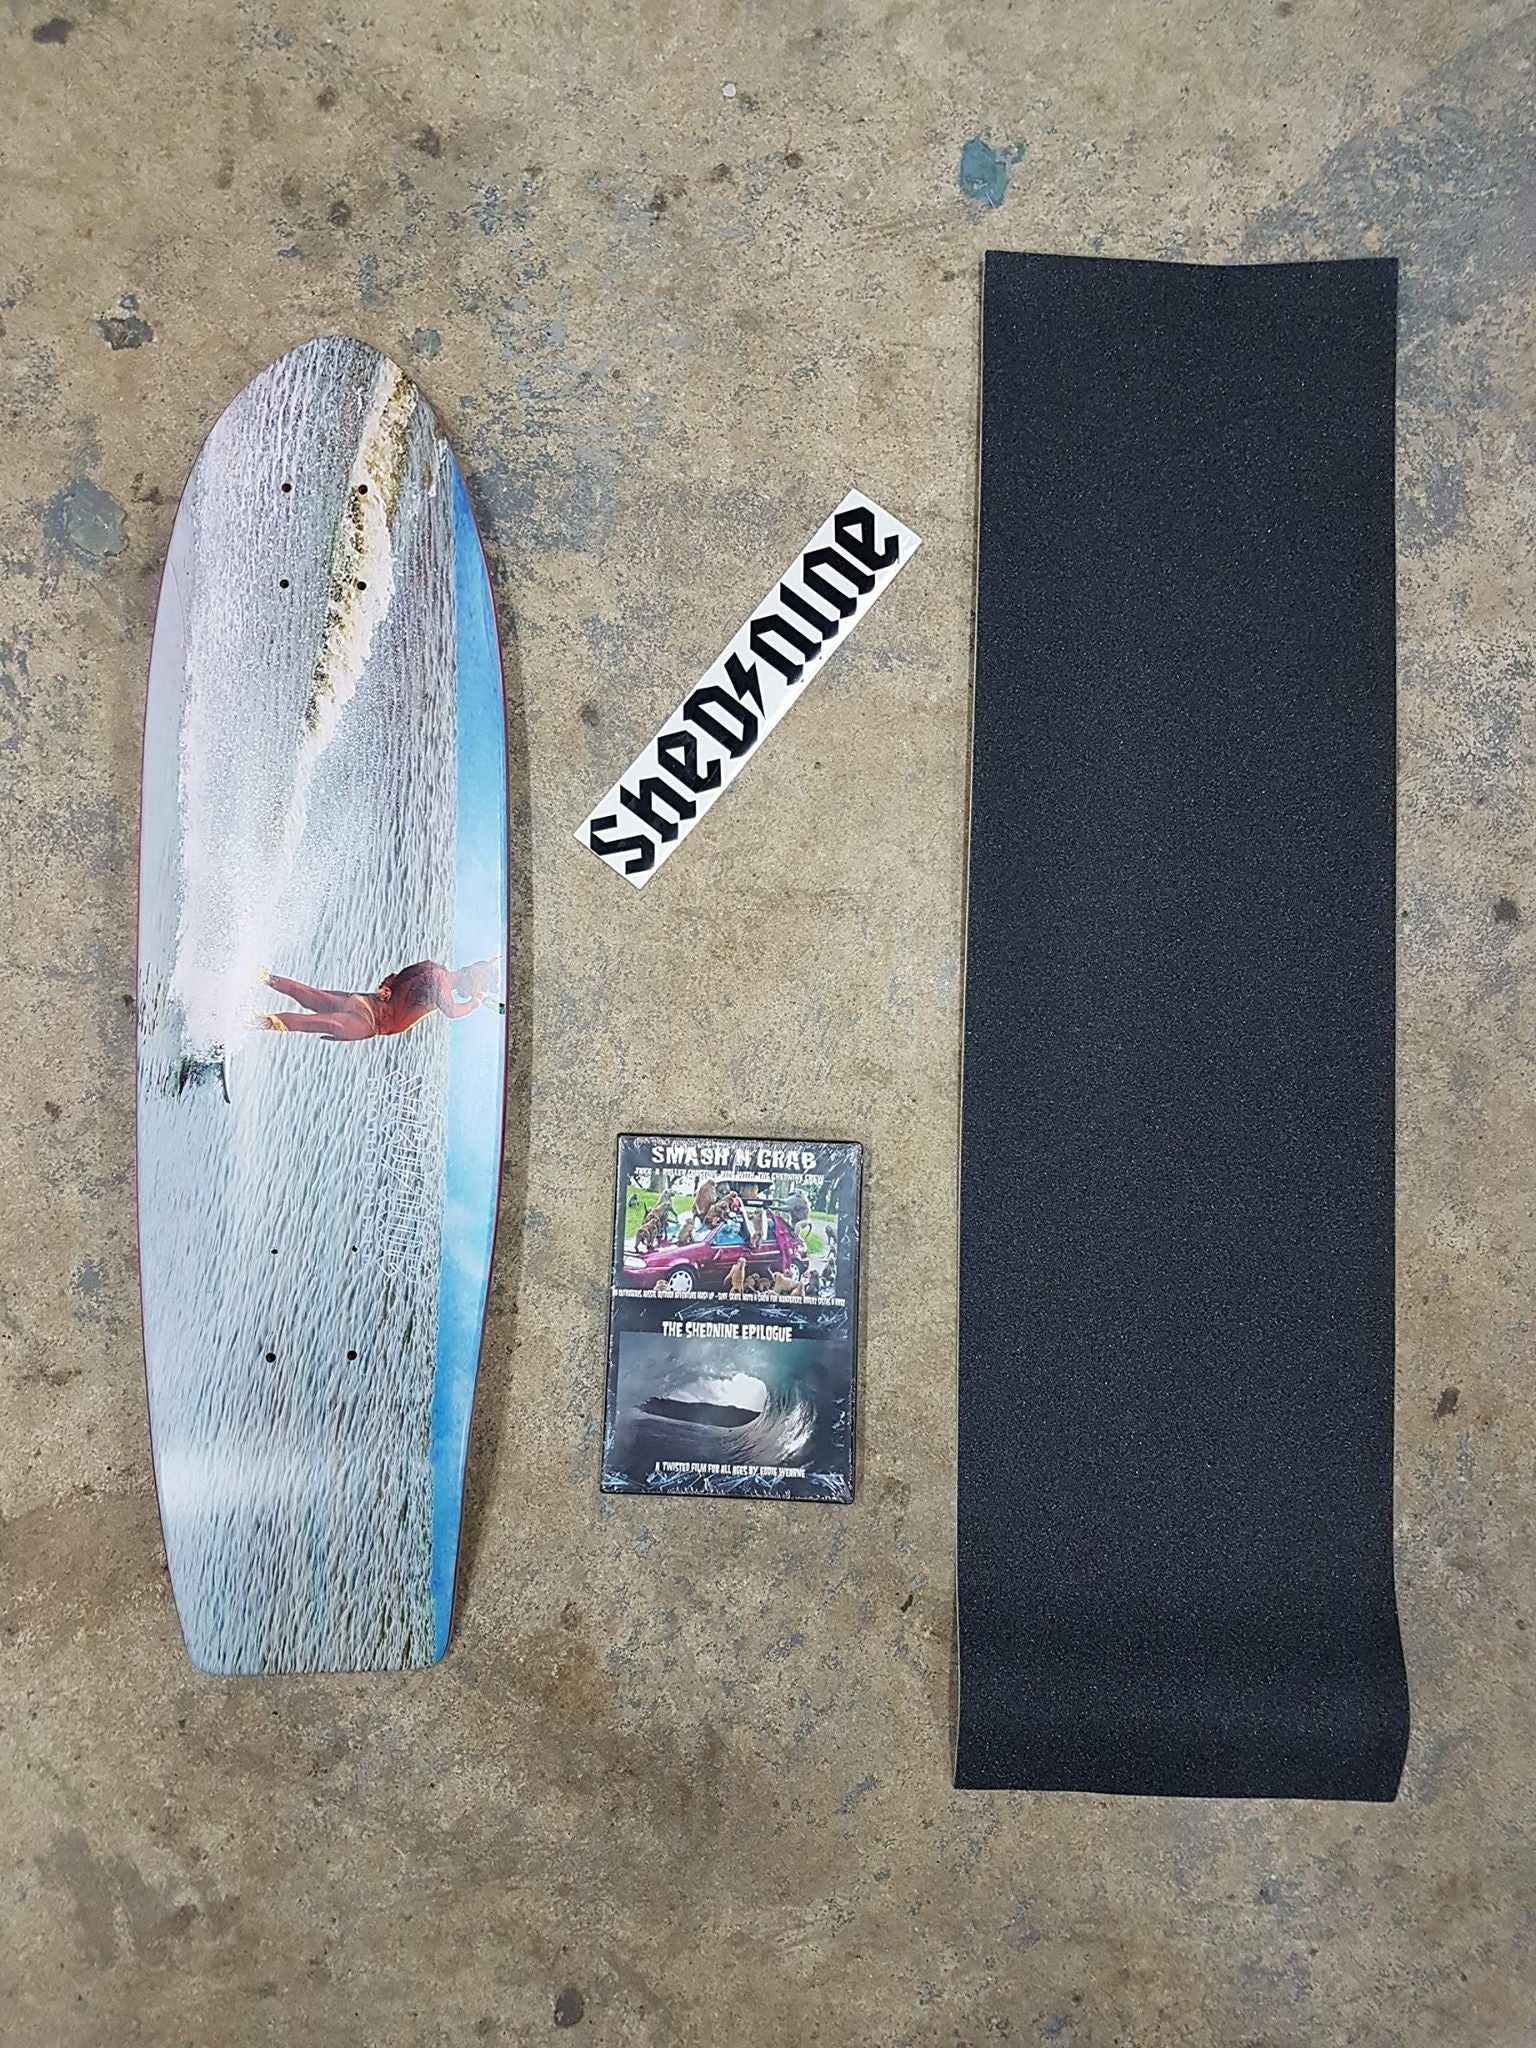 Frothalot Cruiser Deck, Grip, Dvd and Sticker -  Skateboard Deck, Shed Nine, Shed Nine